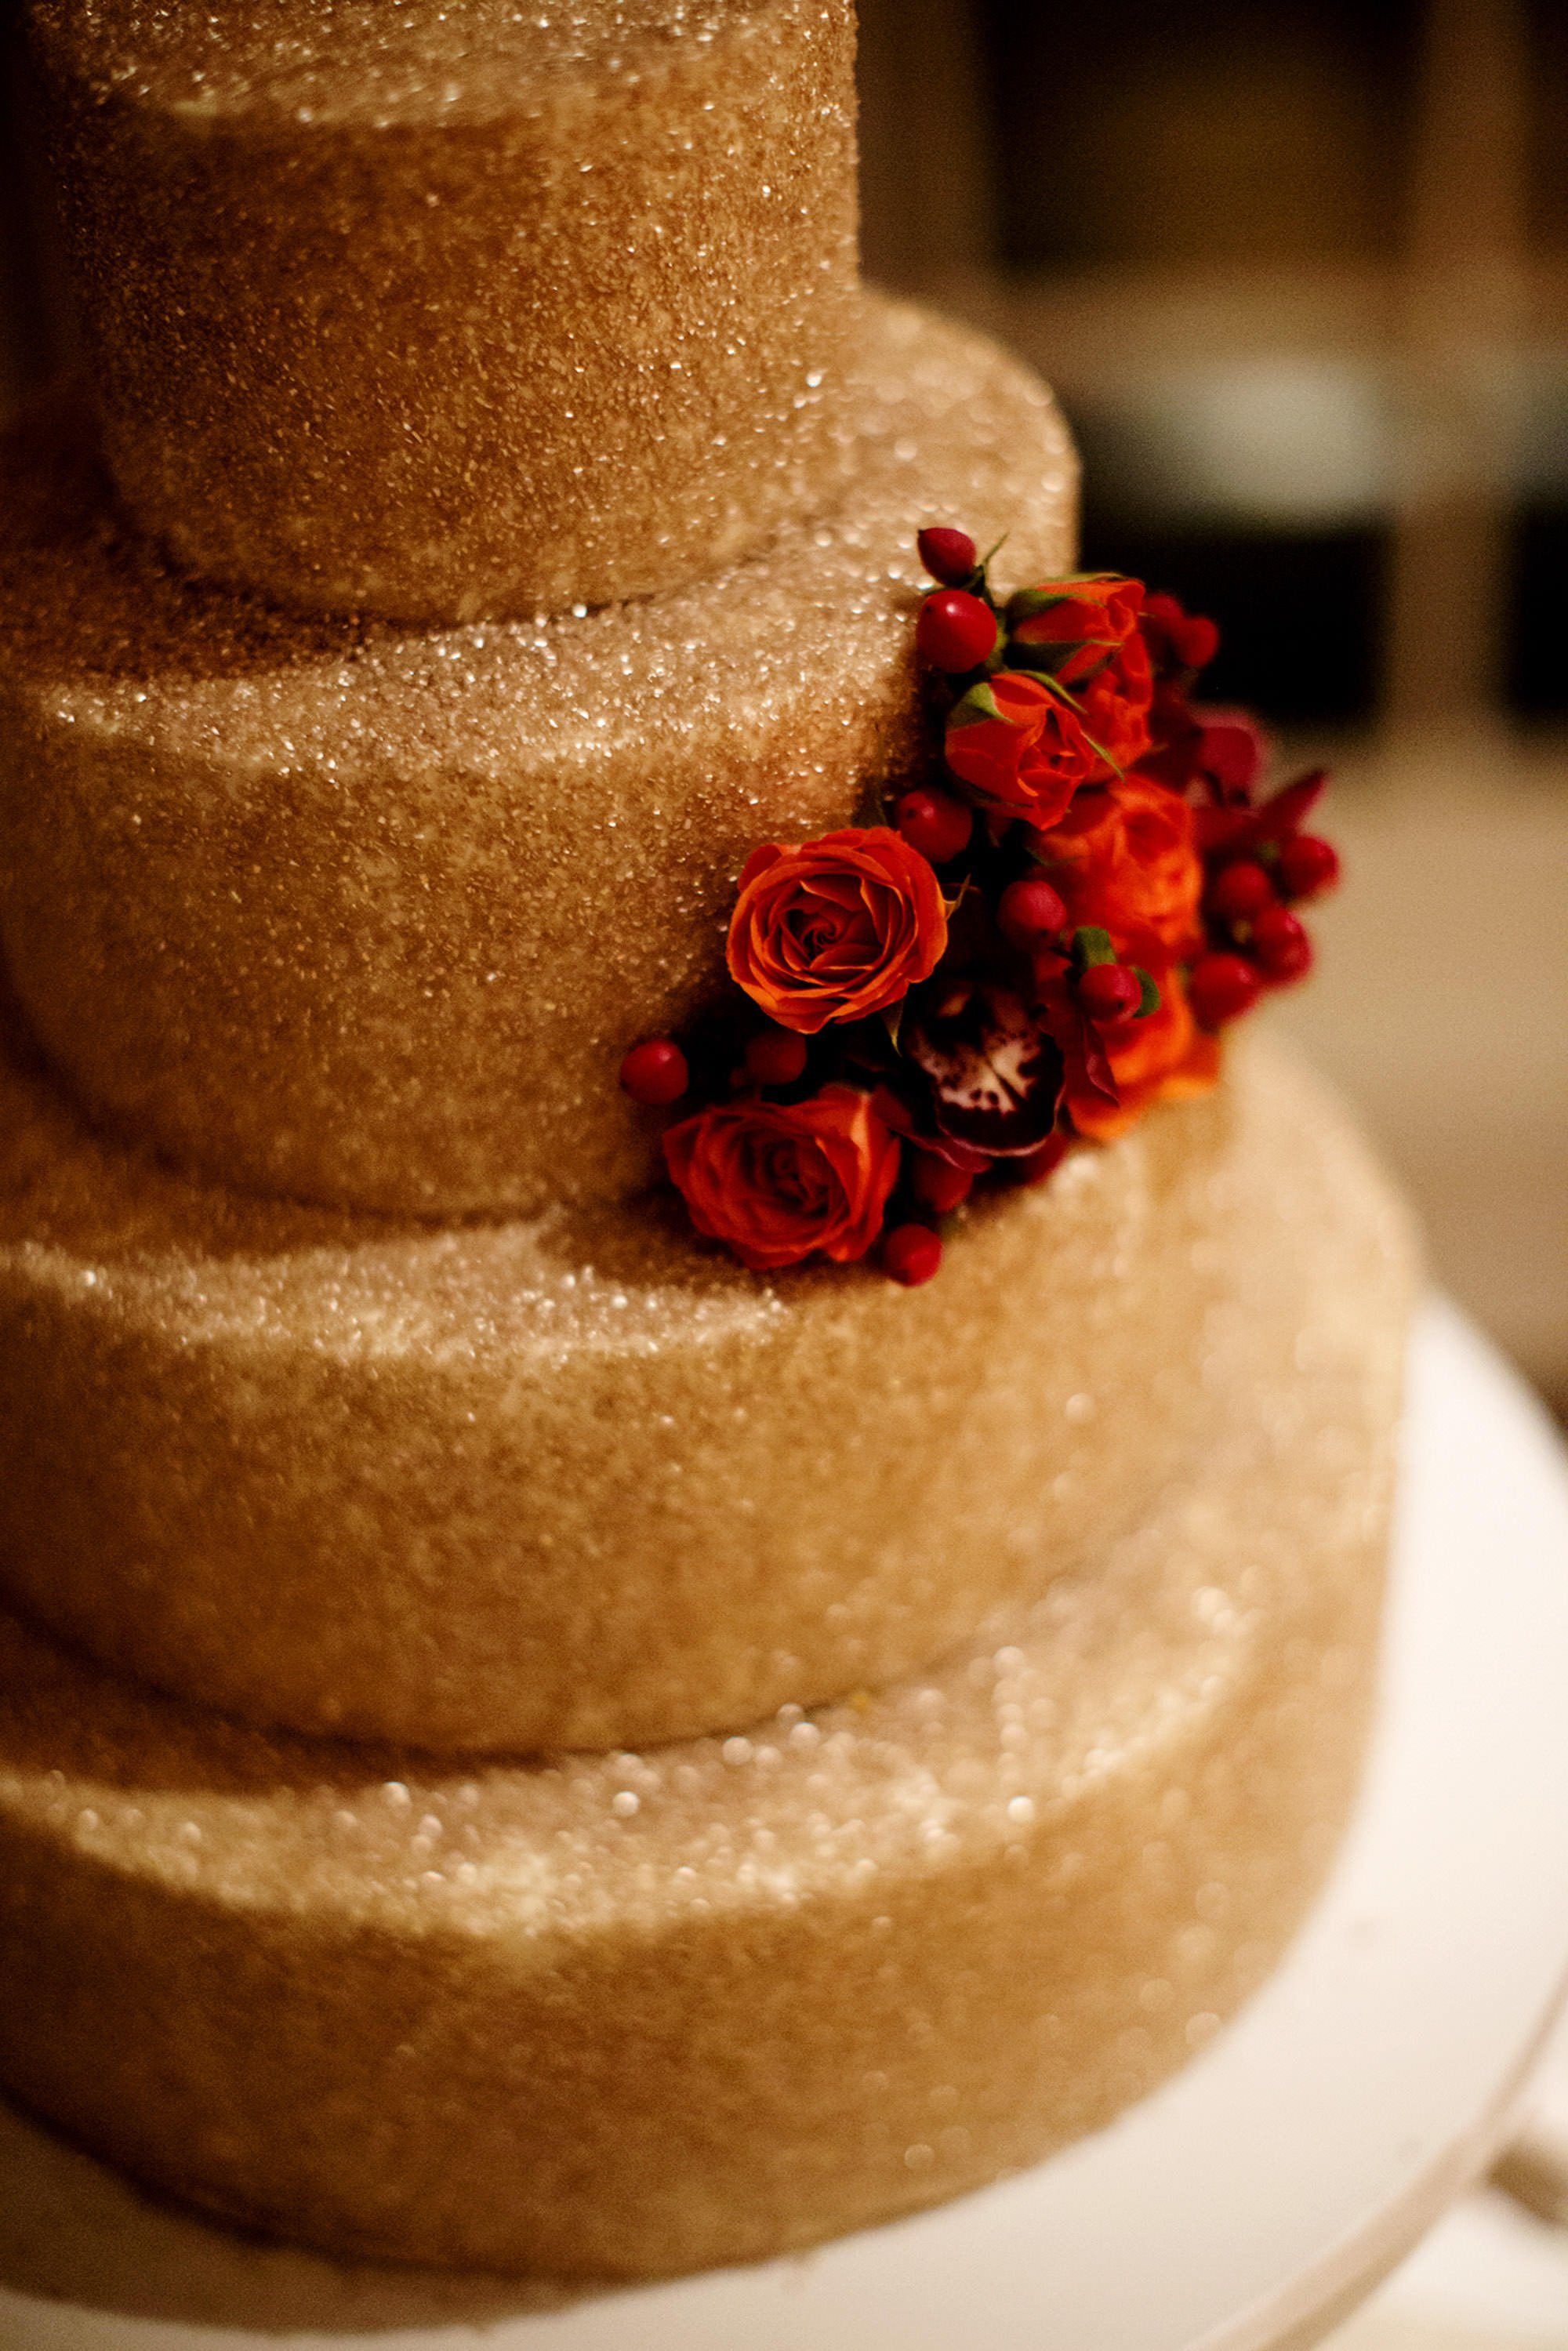 A detail of the wedding cake during this wedding at the Hay Adams Hotel in Washington, DC.